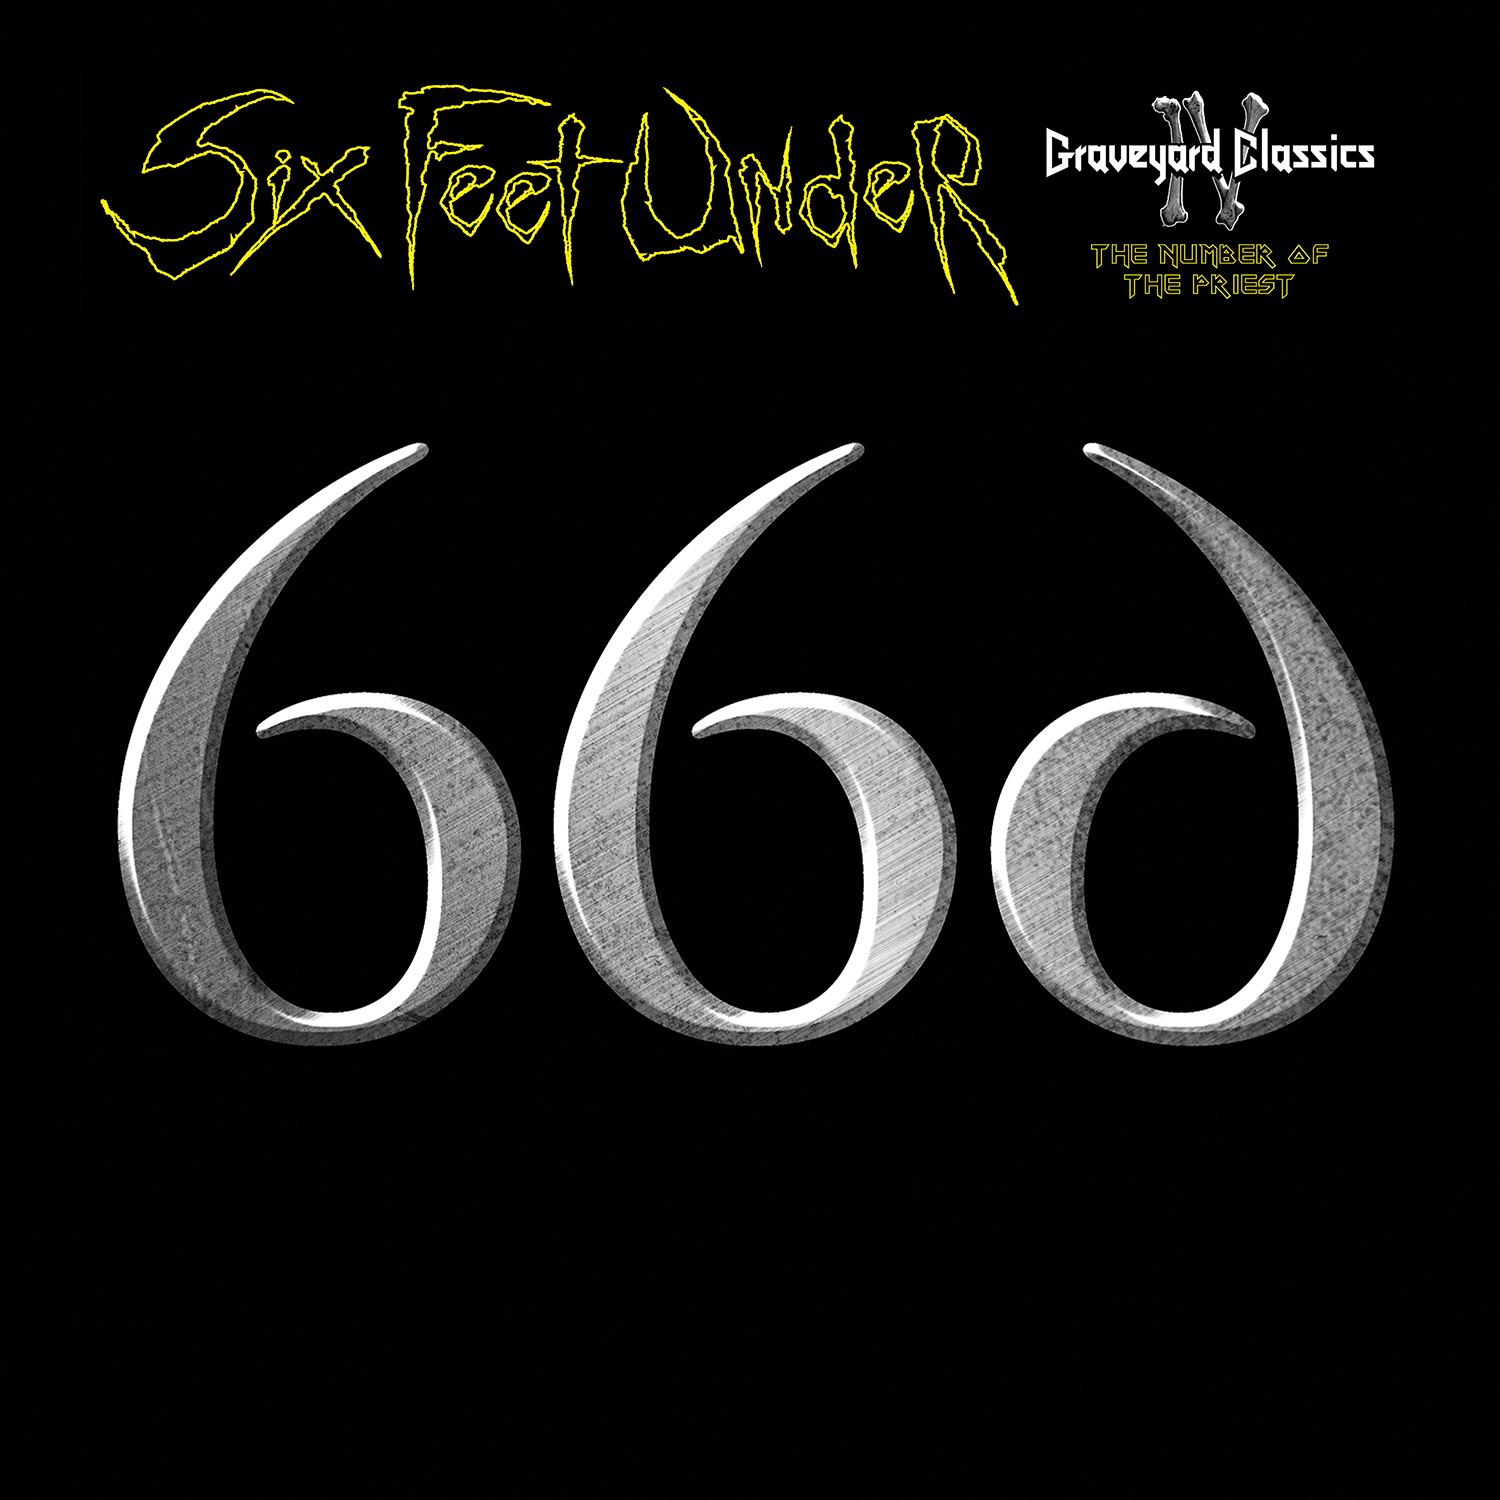 Six Feet Under — Graveyard Classics IV: The Number of the Priest (2016)